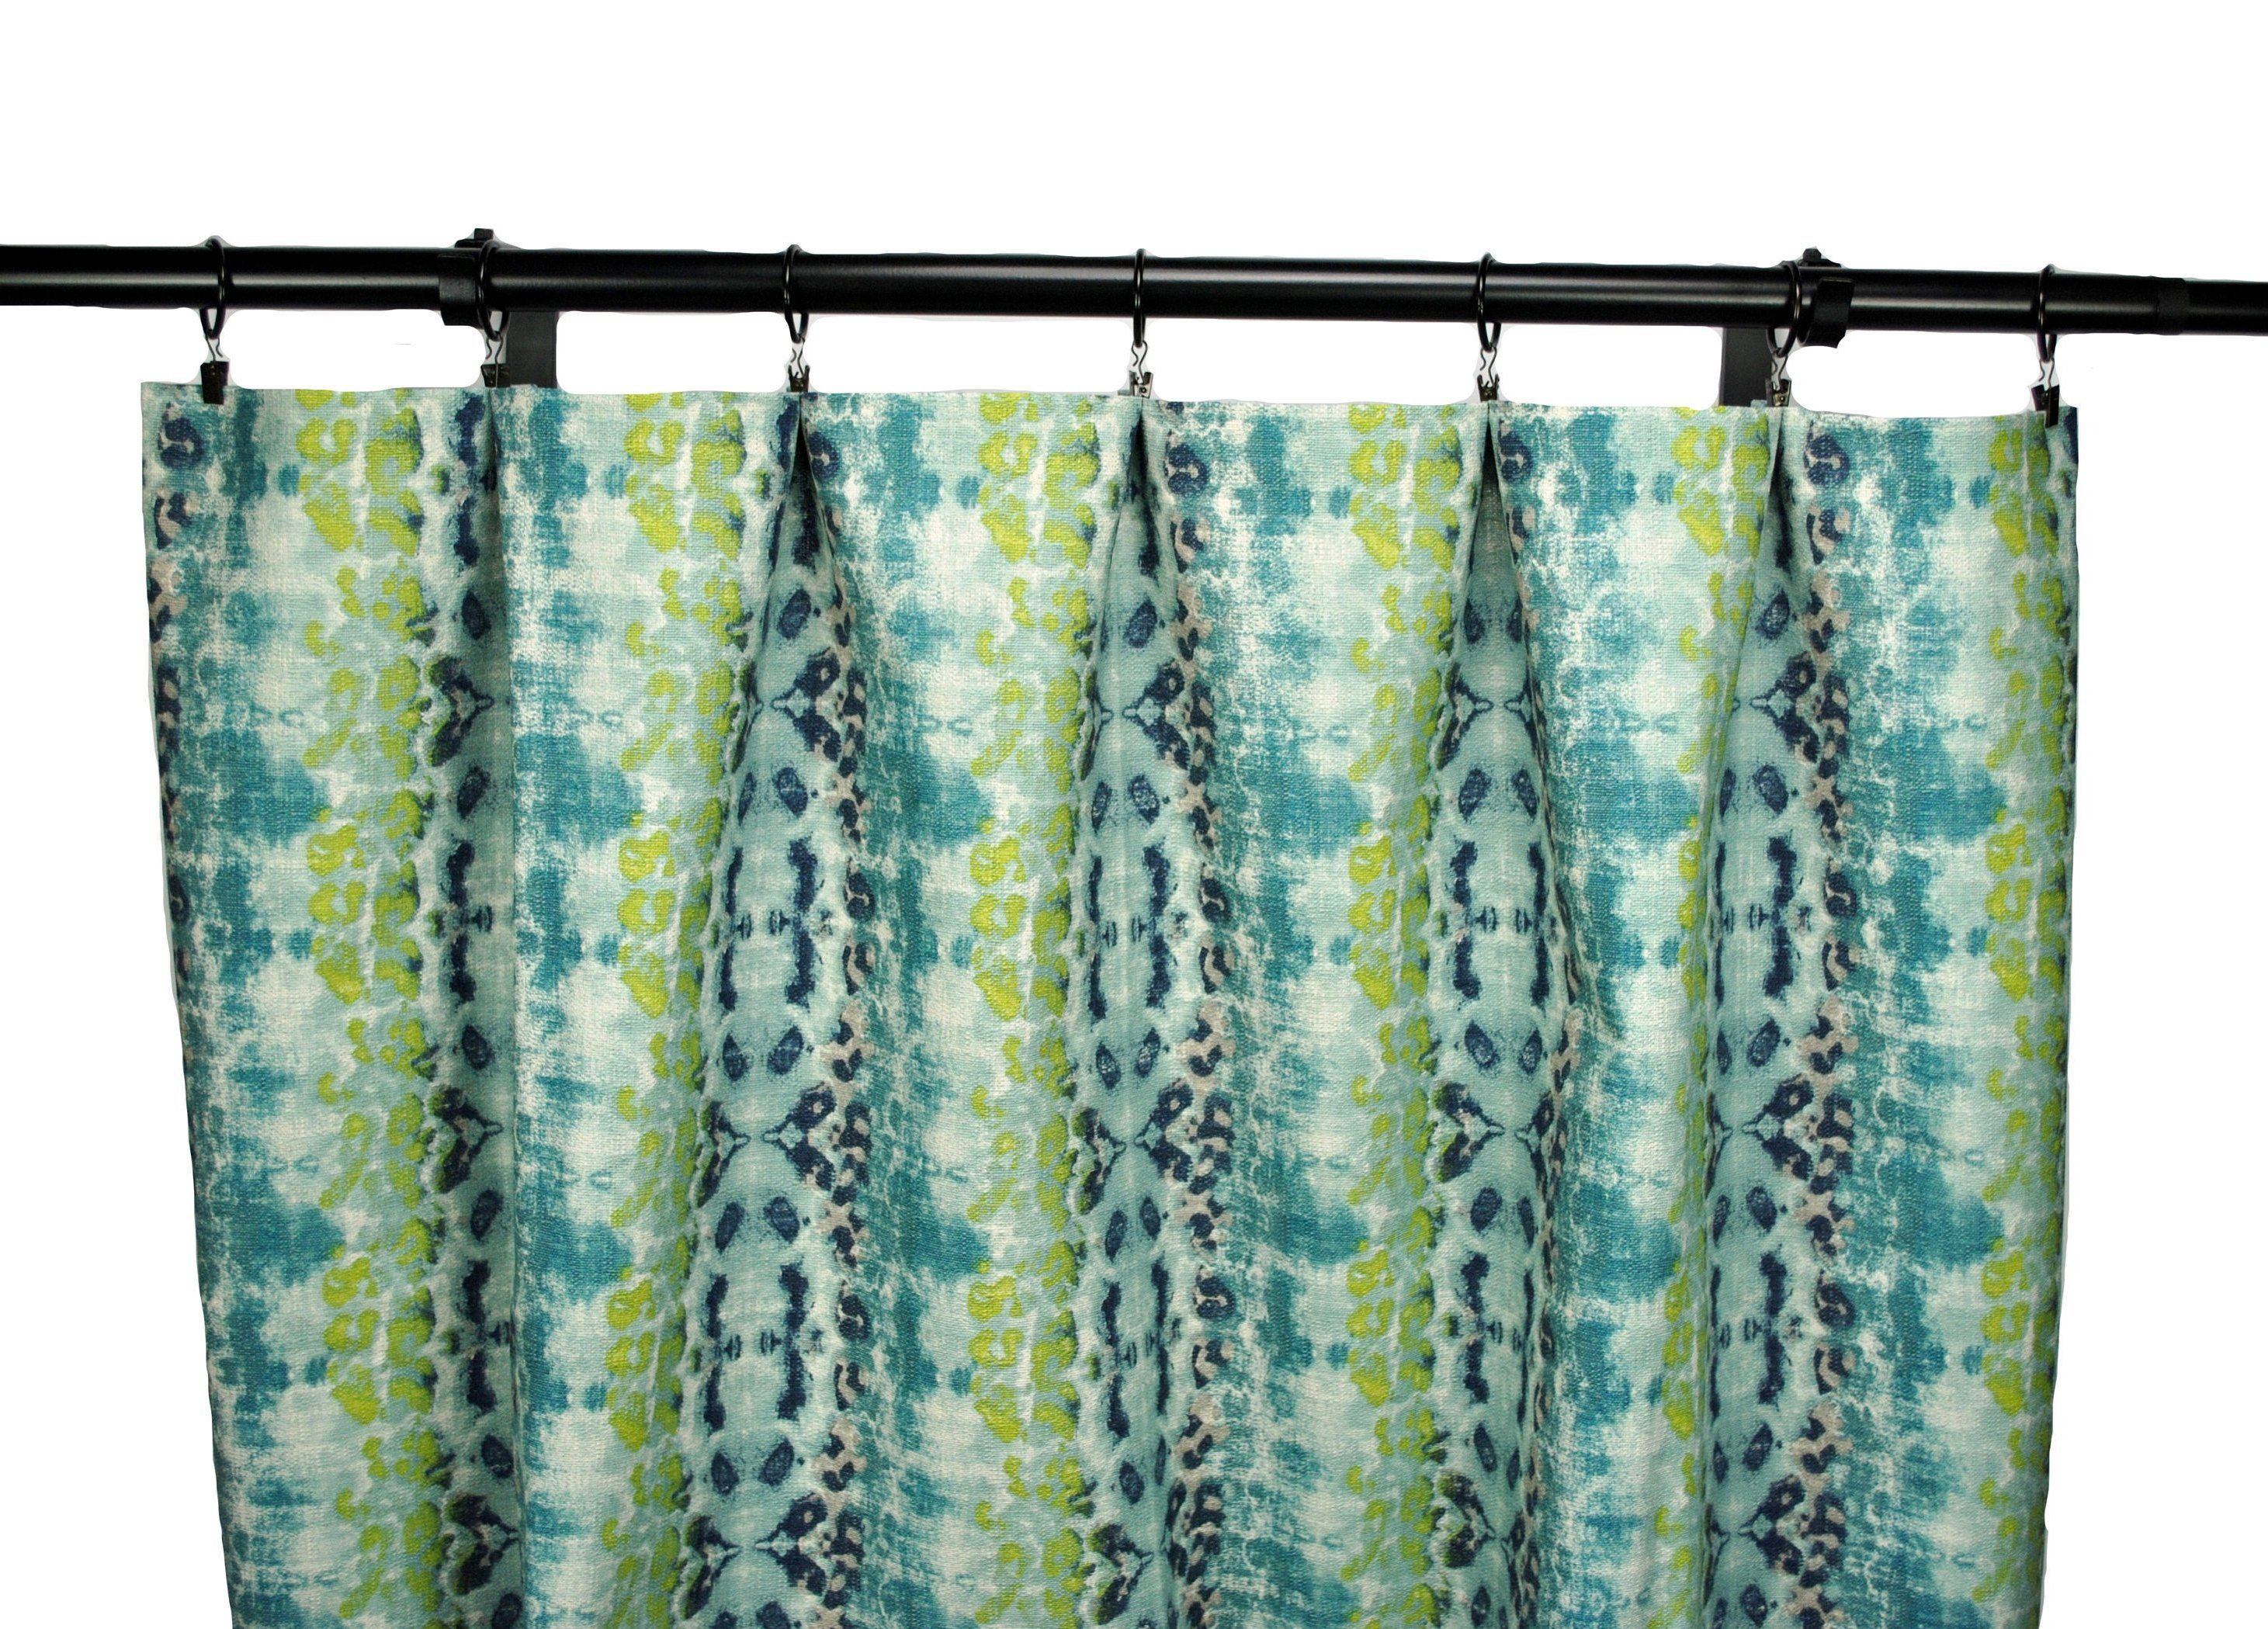 Ikat Curtains Lime Green Palm Navy Blue Curtain 2 Curtain Panels Curtains Home Decor Turquoise Curtain Turquoise Curtains Navy Blue Curtains Ikat Curtains